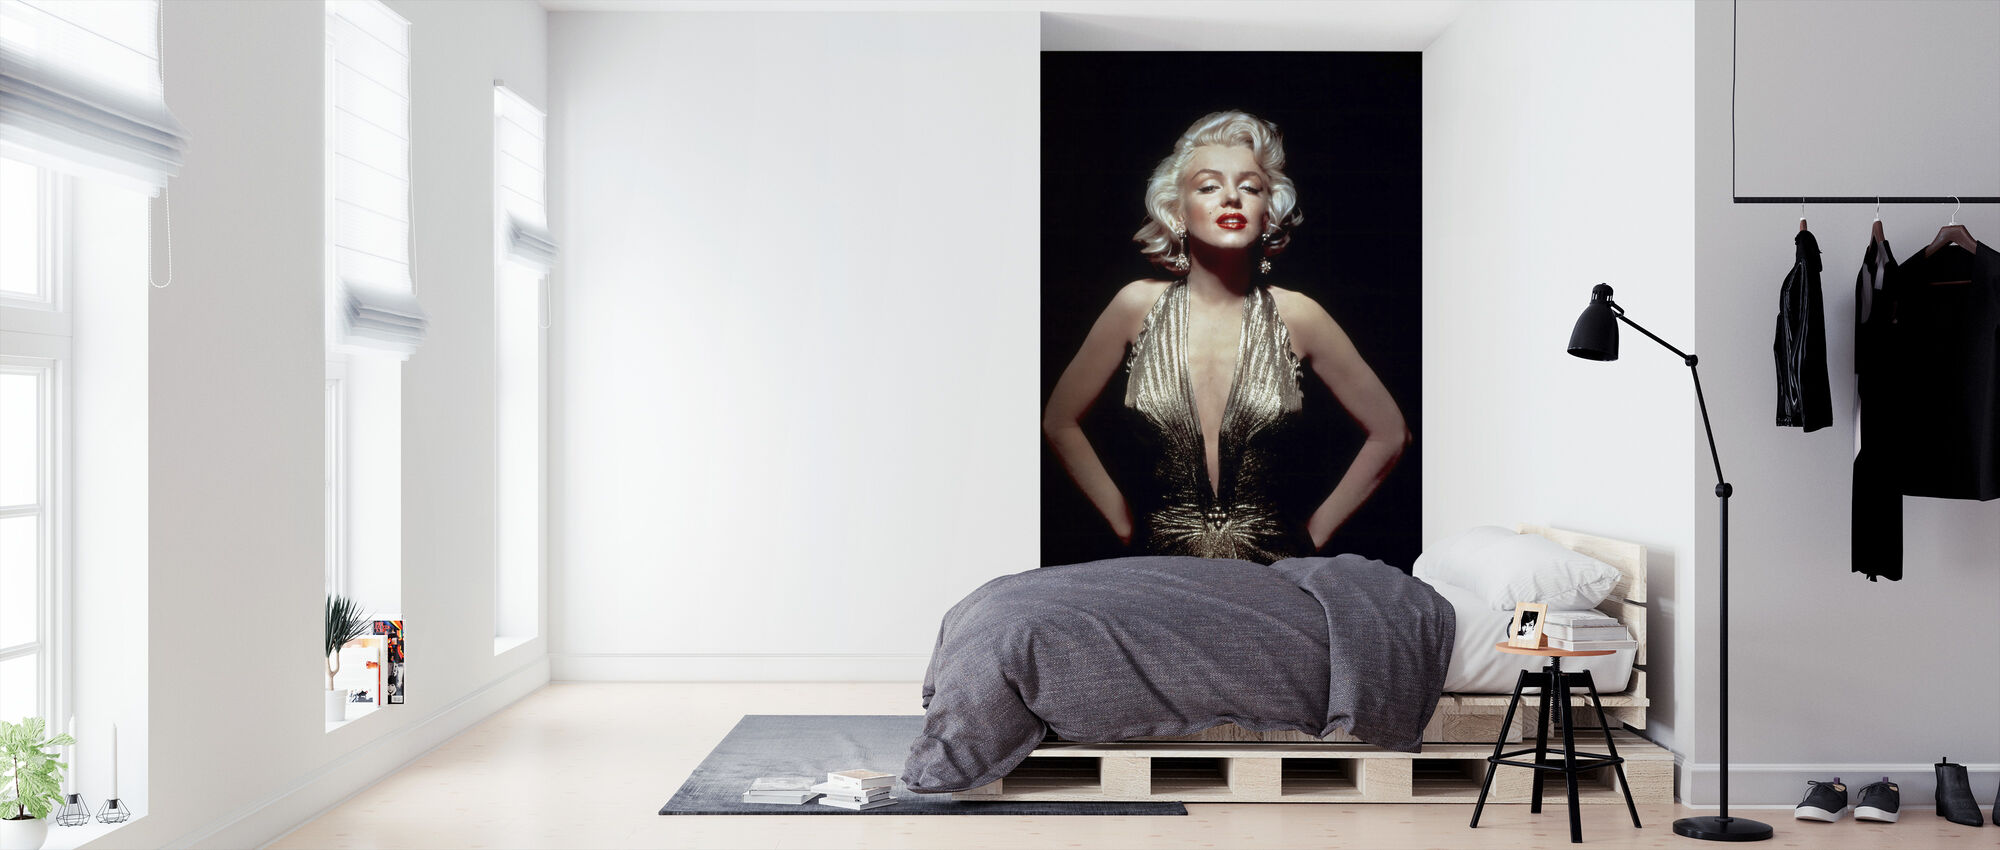 Marilyn Monroe in Gentlemen Prefer Blondes - Wallpaper - Bedroom